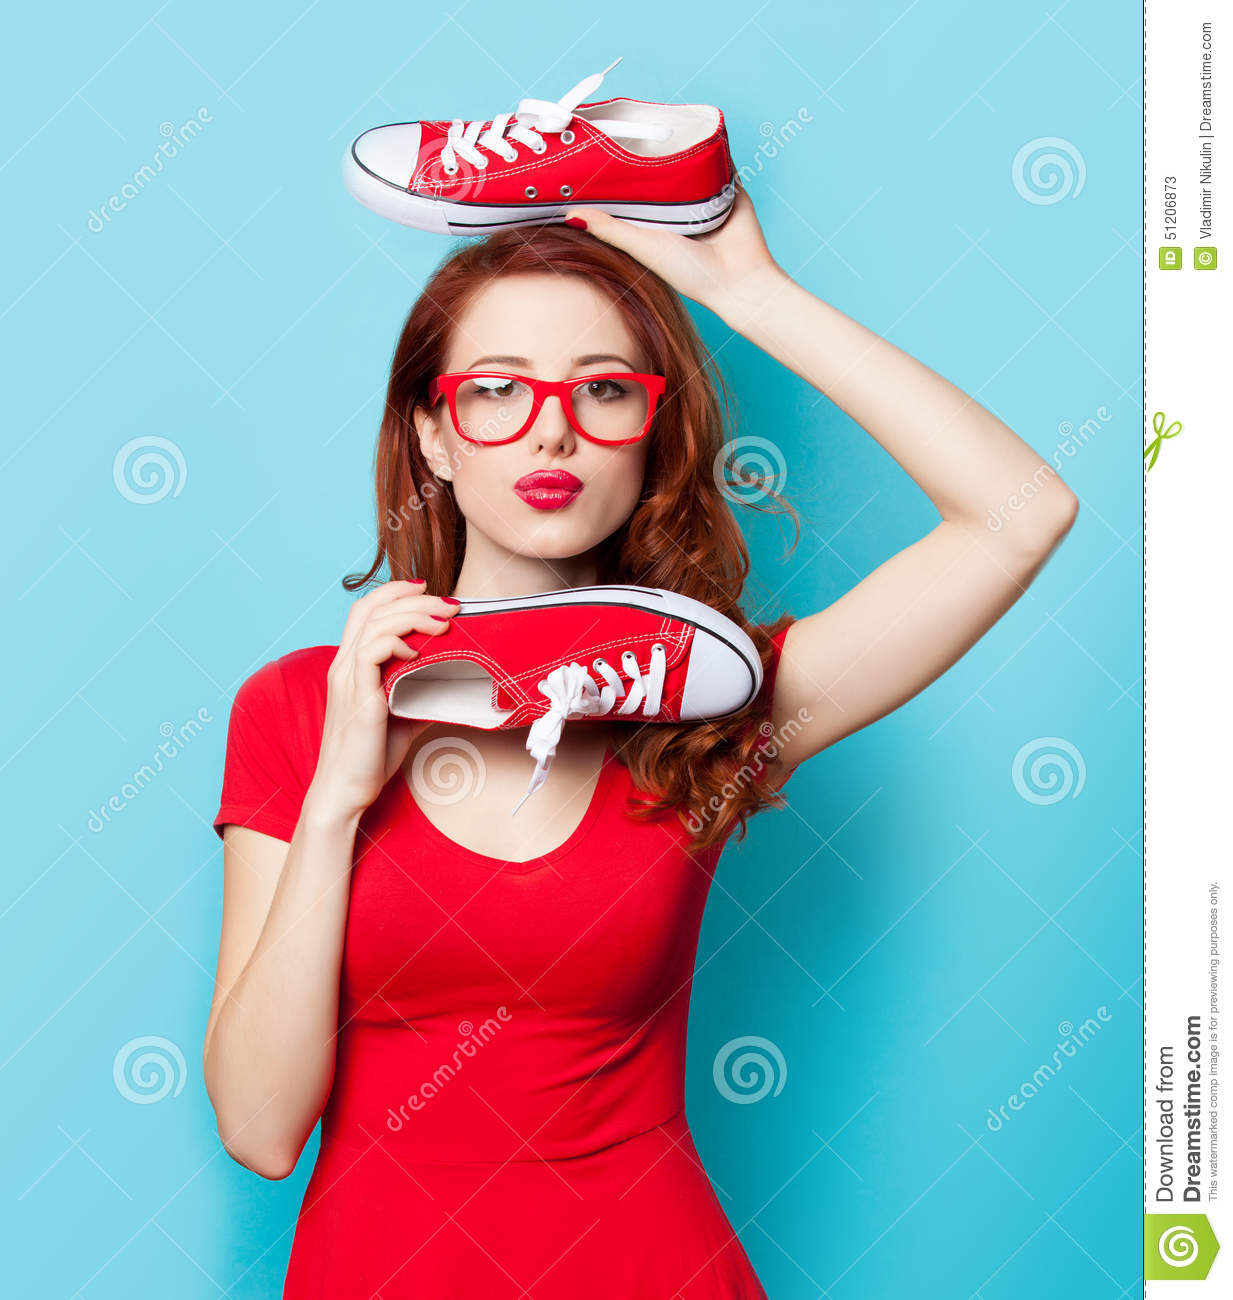 Girl In Red Dress With Gumshoes Stock Photo - Image: 51206873